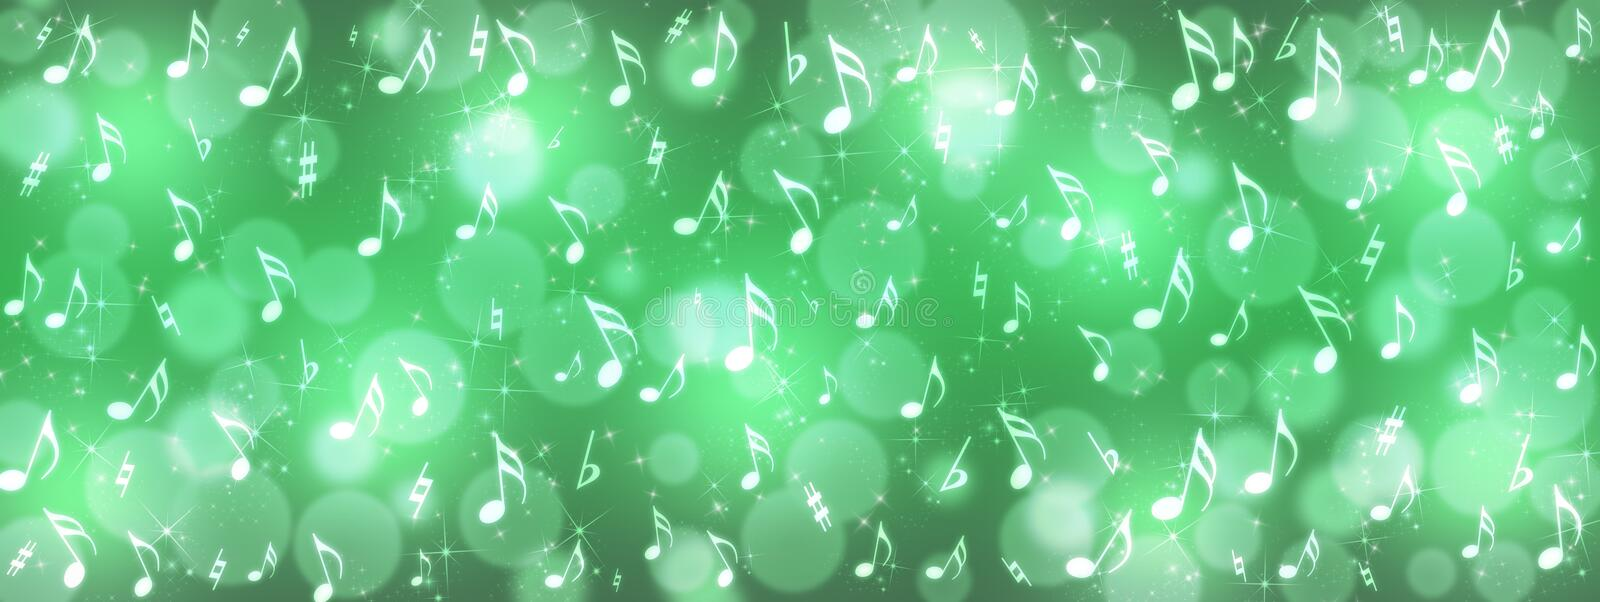 Music Notes, Bokeh and Sparkles in Shining Green Background Banner. Panoramic illustration of bright music notes, bokeh and glittering sparkles in shiny green royalty free stock image